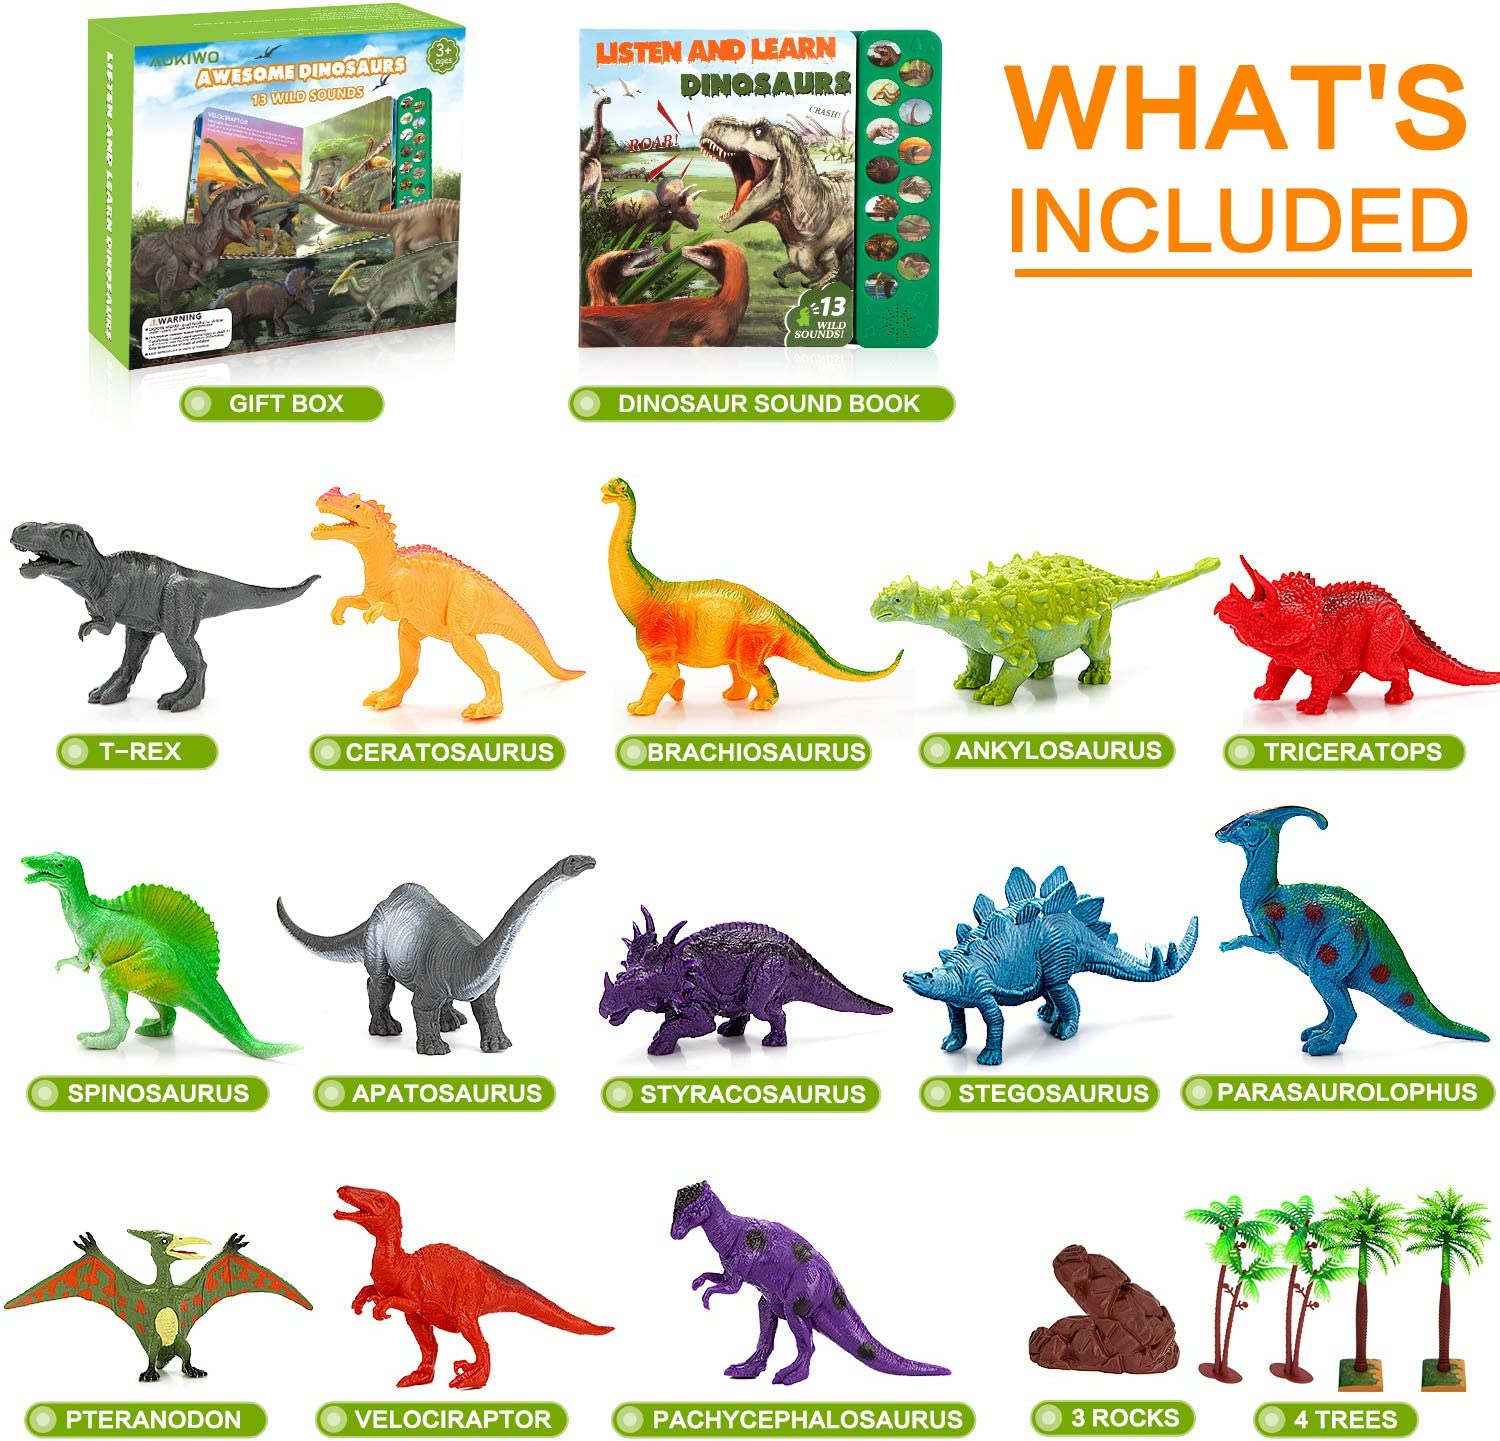 Dinosaur Toys for Boys and Girls Including T-Rex Triceratops Velociraptor Trees and Rocks Dinosaur Toys with Sound Book 21 Packs Realistic Dinosaurs Figures with Sound Book Best Gifts for Kids